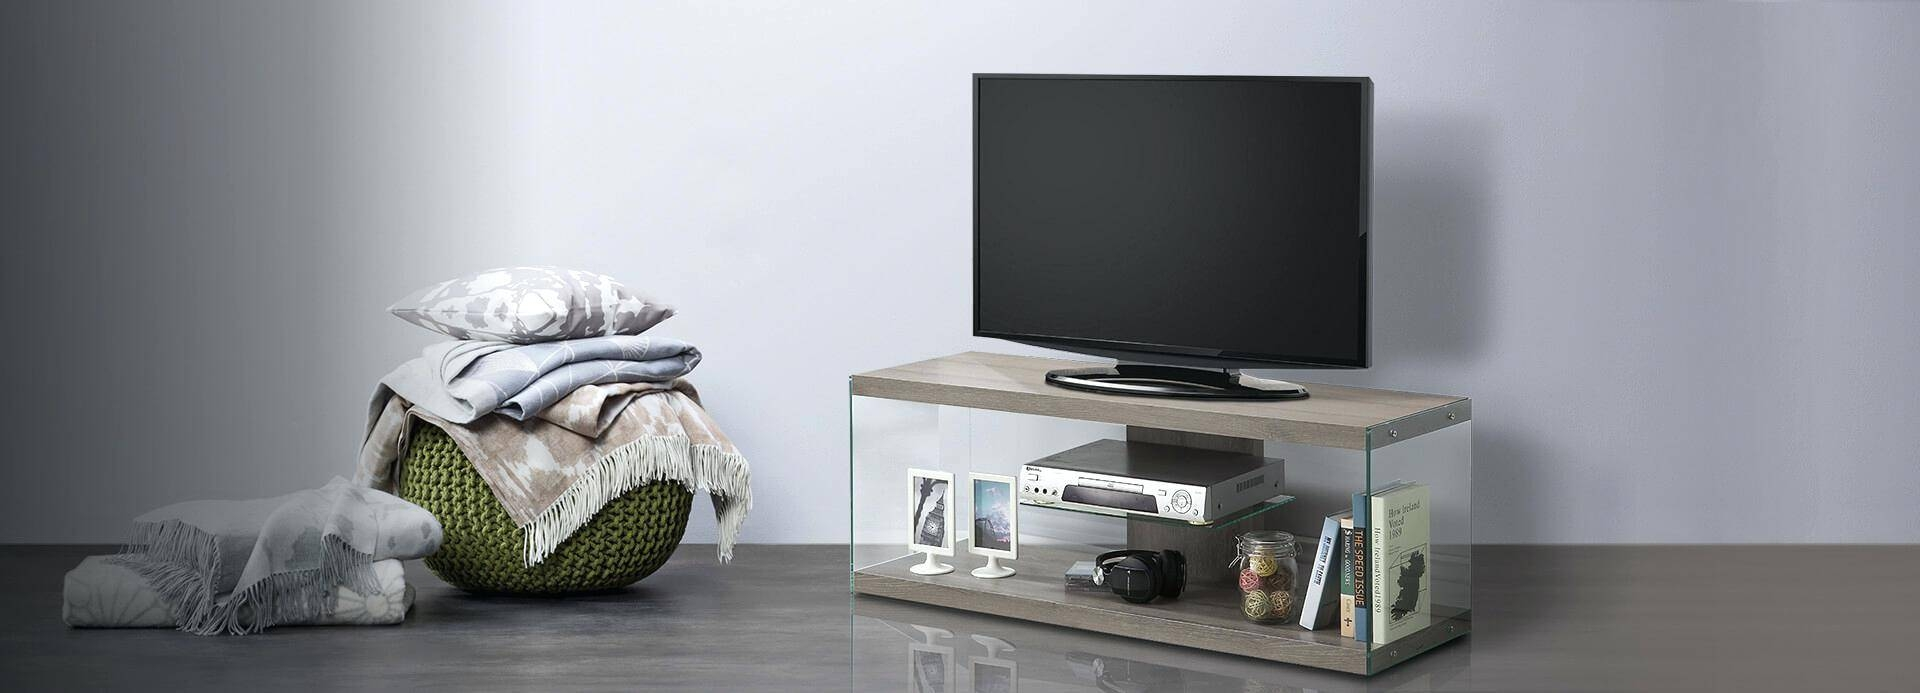 Articles With Acrylic Tv Stand Tag: Excellent Acrylic Tv Stand For With Regard To Clear Acrylic Tv Stands (View 15 of 15)